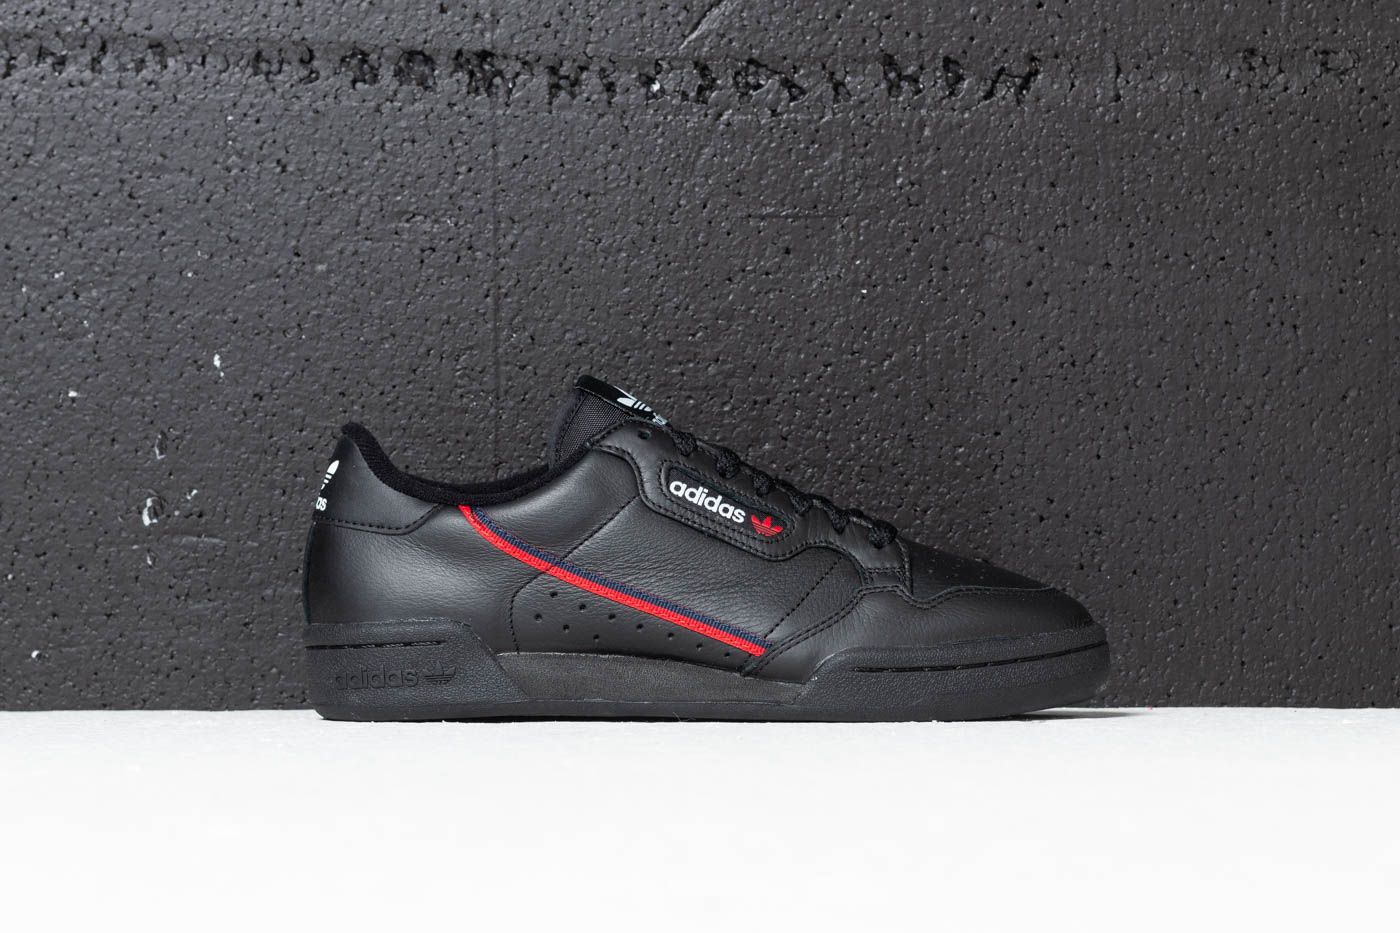 outlet on sale vast selection quite nice adidas Continental 80 Core Black/ Scarlet/ Collegiate Navy ...